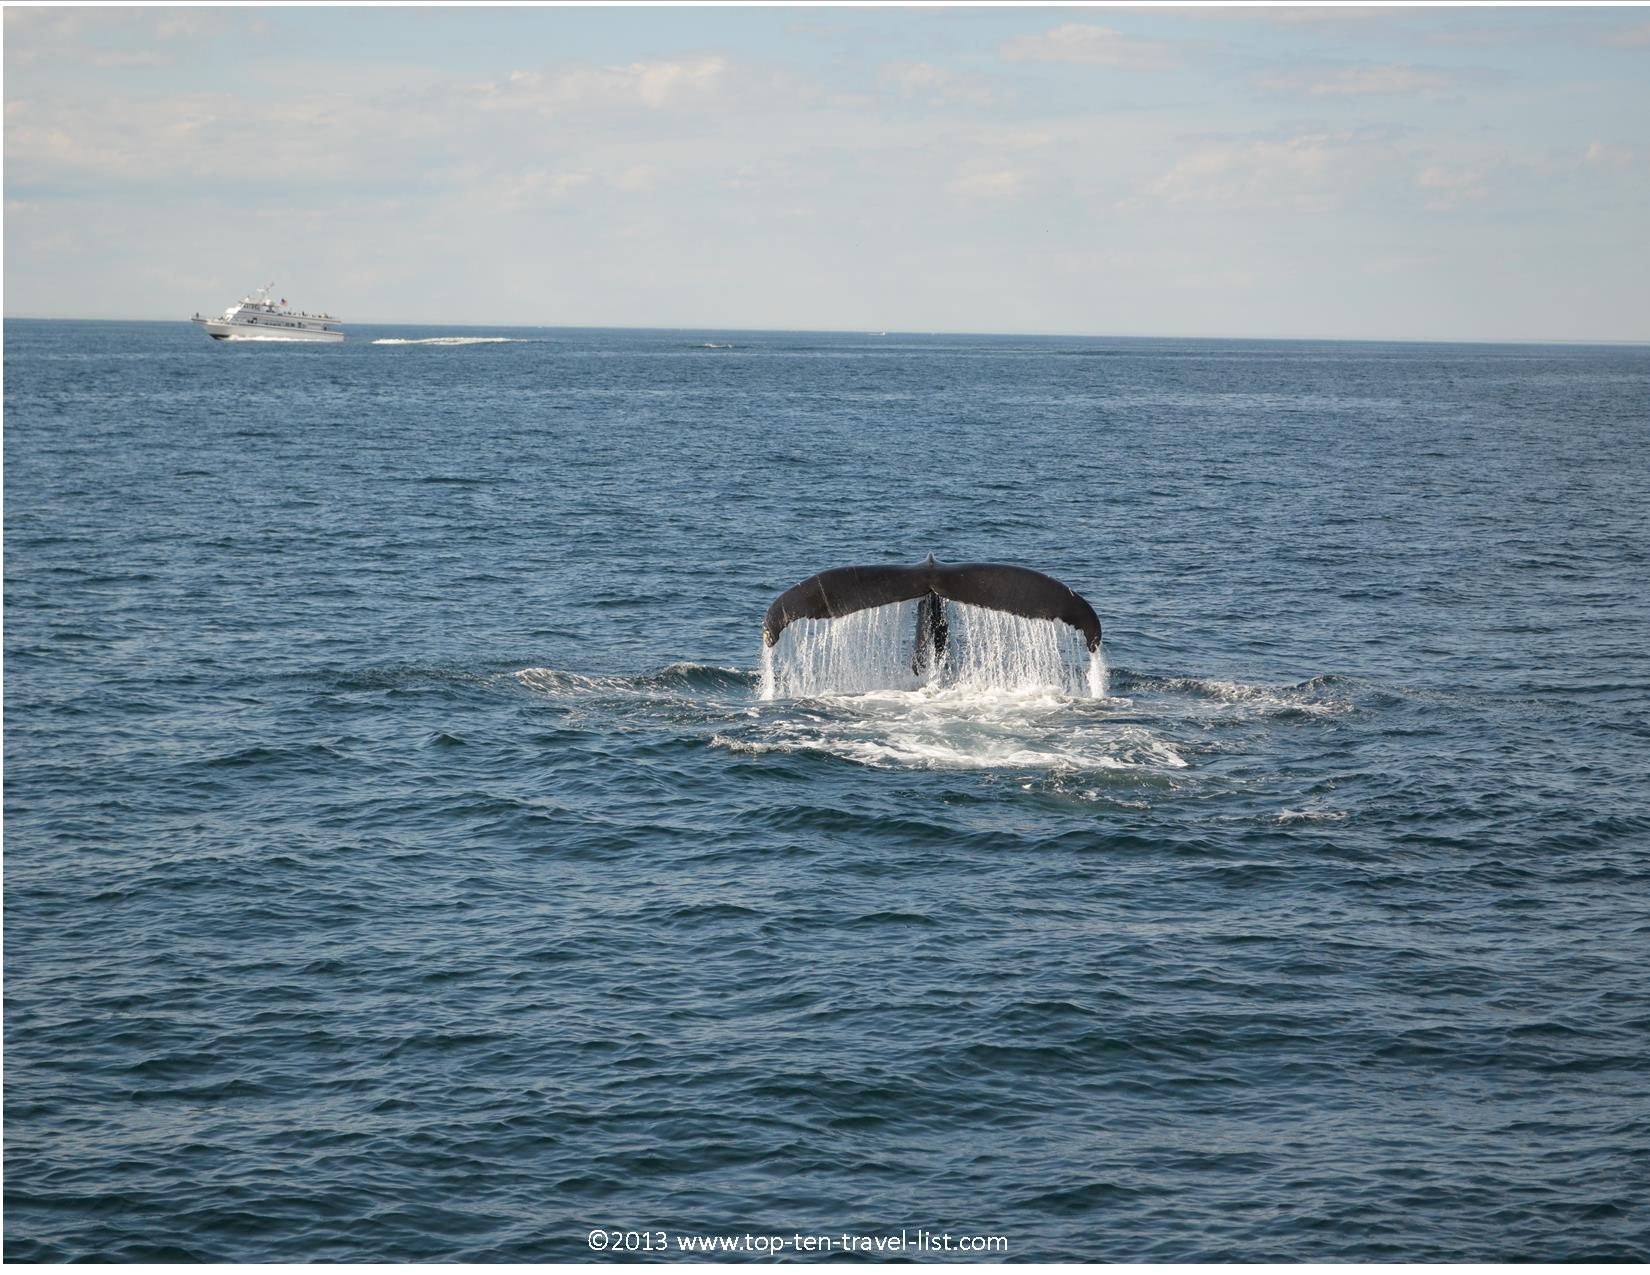 Whale watching in Plymouth, Massachusetts